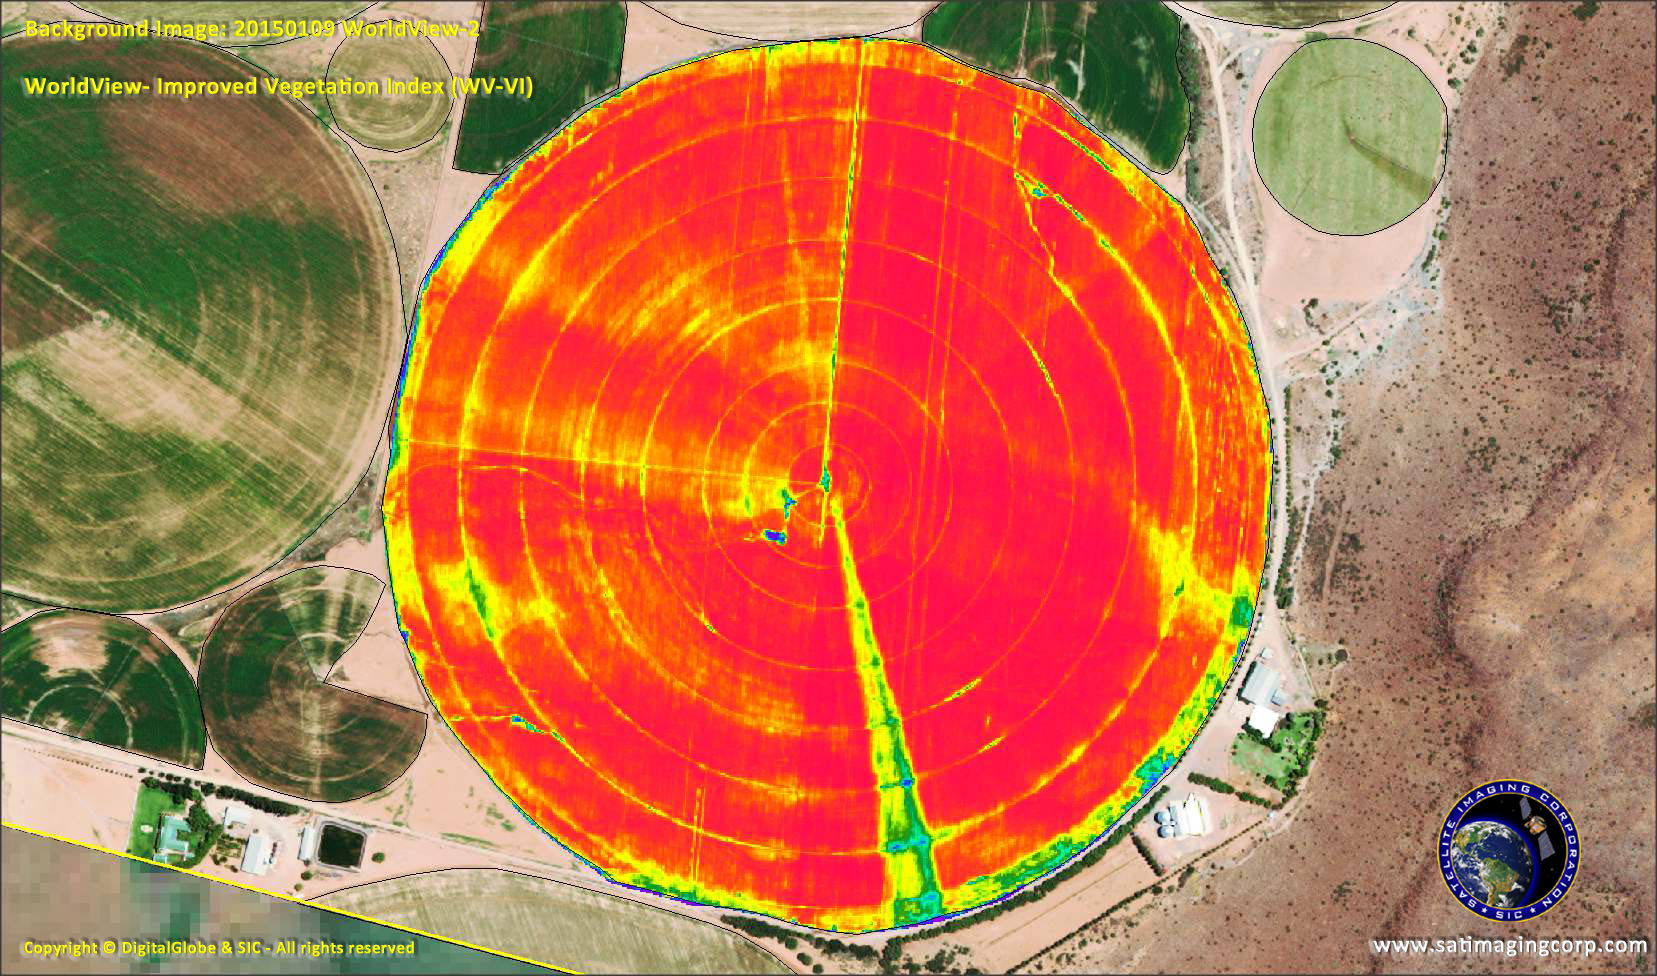 Gis Maps For Agriculture Mapping Satellite Imaging Corp